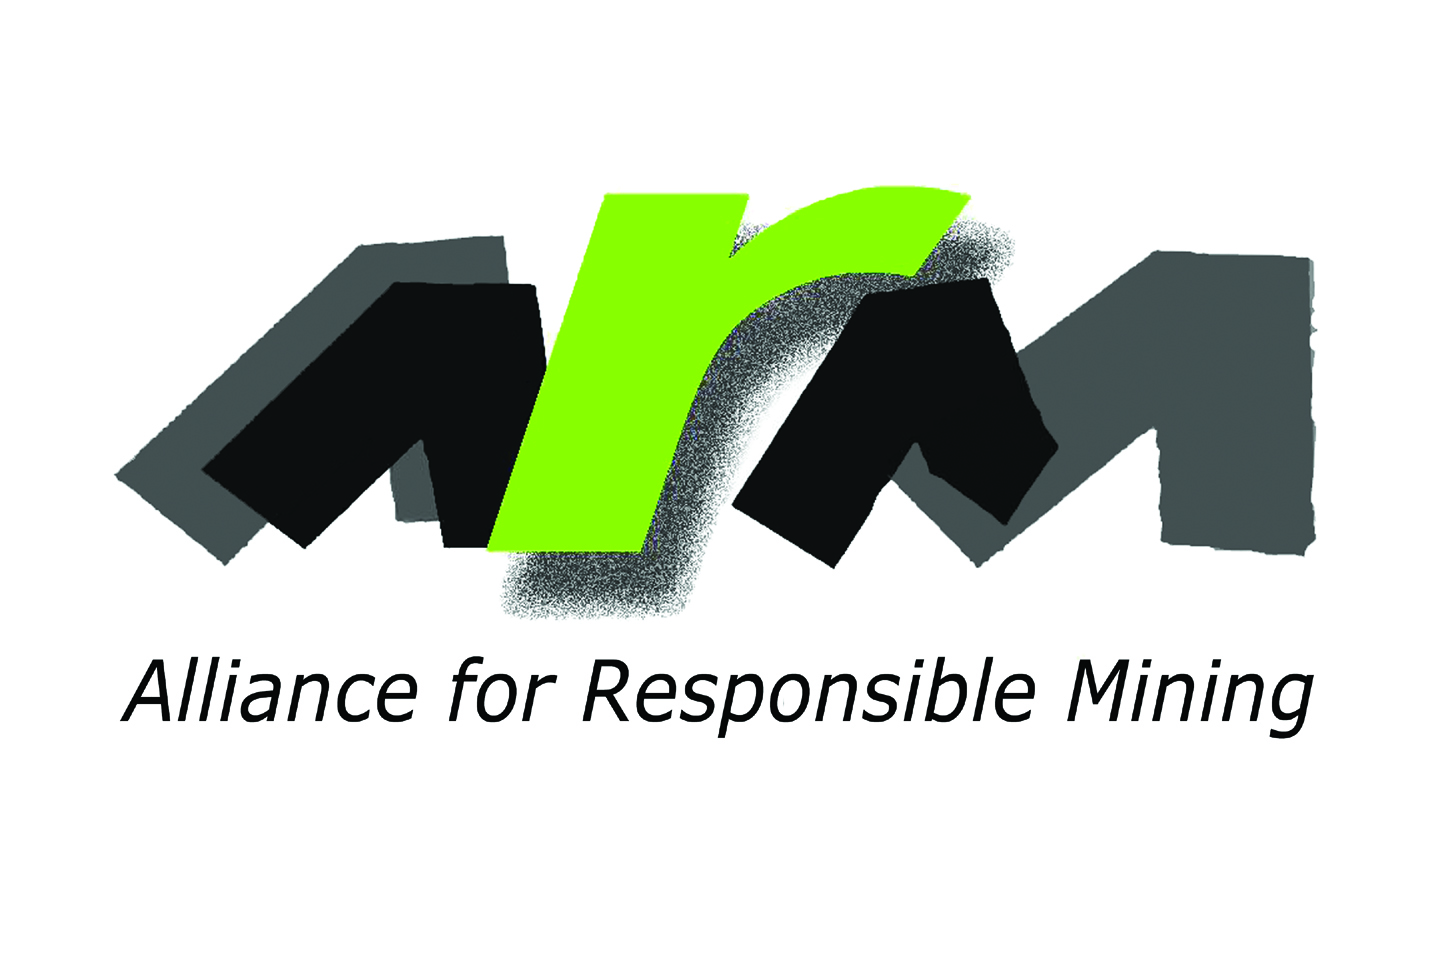 logo for Alliance for Responsible Mining